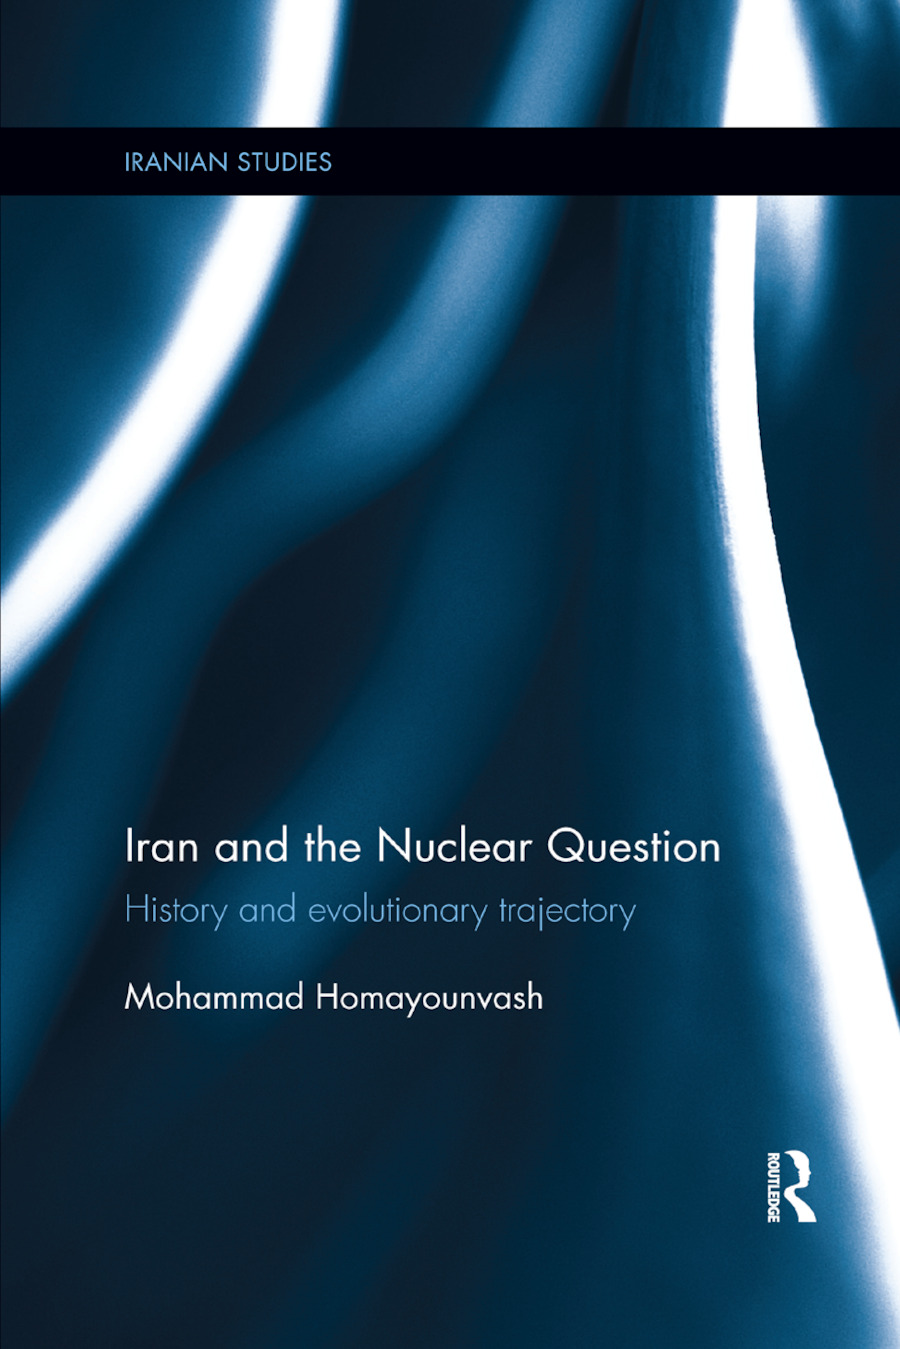 Iran and the Nuclear Question